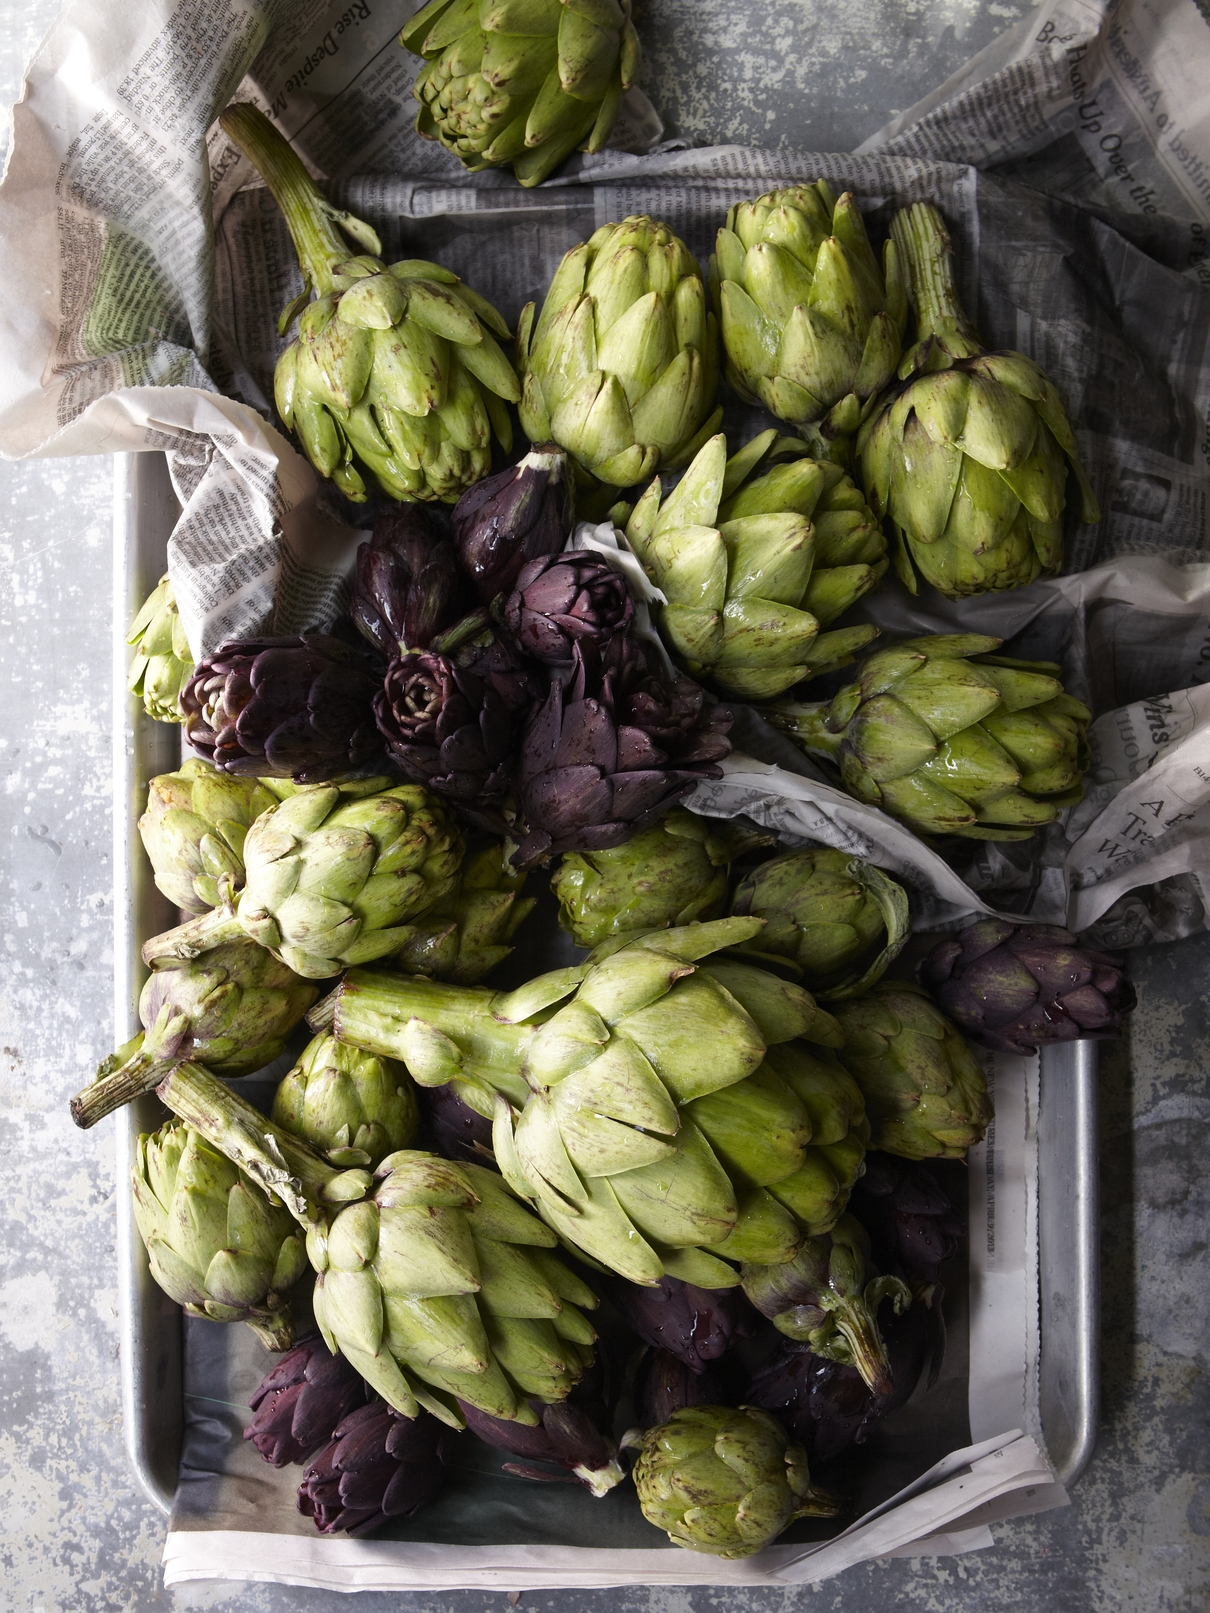 Fresh artichokes at Via Carota, where cherished downtown chefs Jody Williams and Rita Sodi cook deeply appealing Italian food, honoring their local markets and farms from one season to the next.